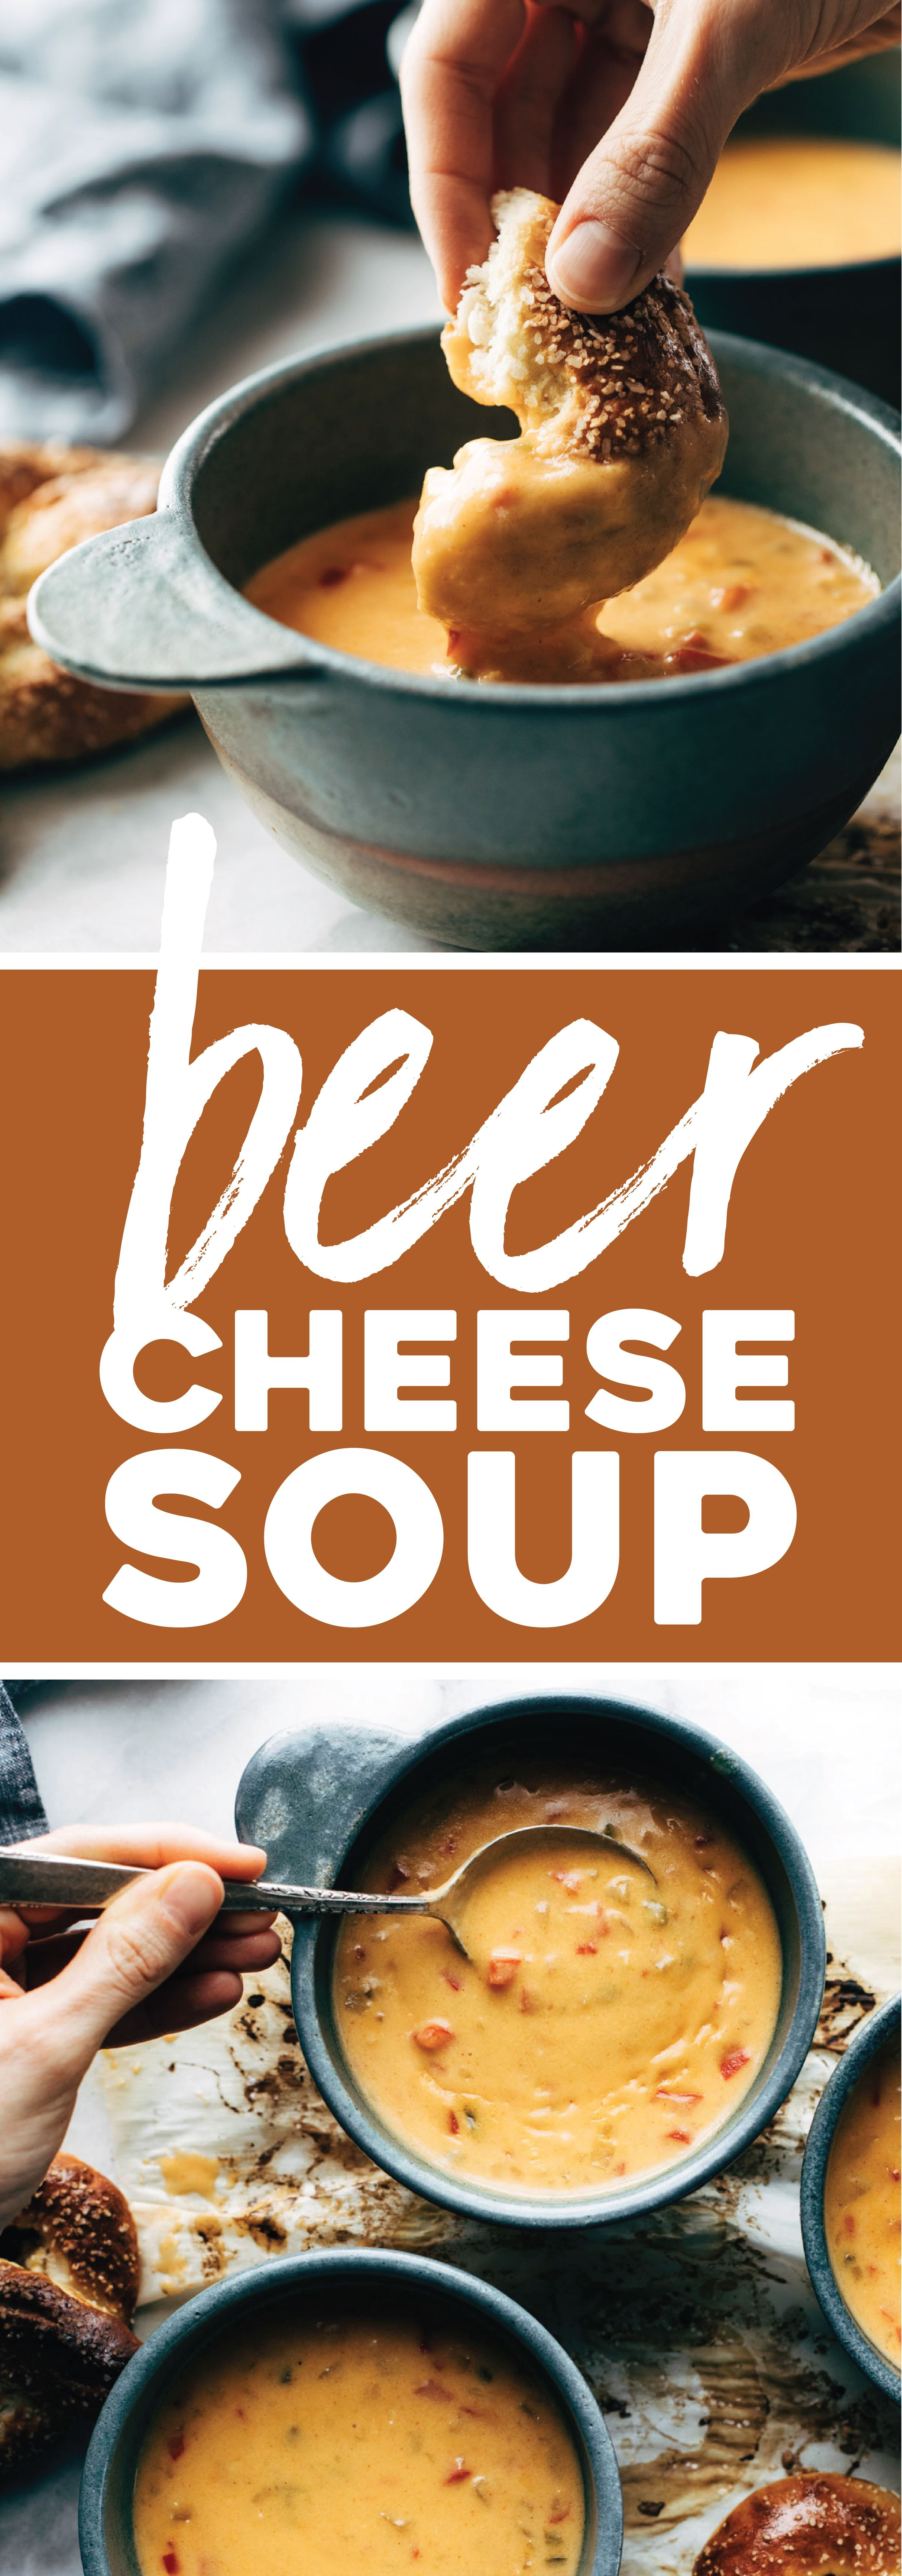 Cheese Soup with Soft Pretzels Beer Cheese Soup with Soft Pretzels! WHAT ELSE IS THERE TO SAY. Creamy homemade comfort food. | Beer Cheese Soup with Soft Pretzels! WHAT ELSE IS THERE TO SAY. Creamy homemade comfort food. |